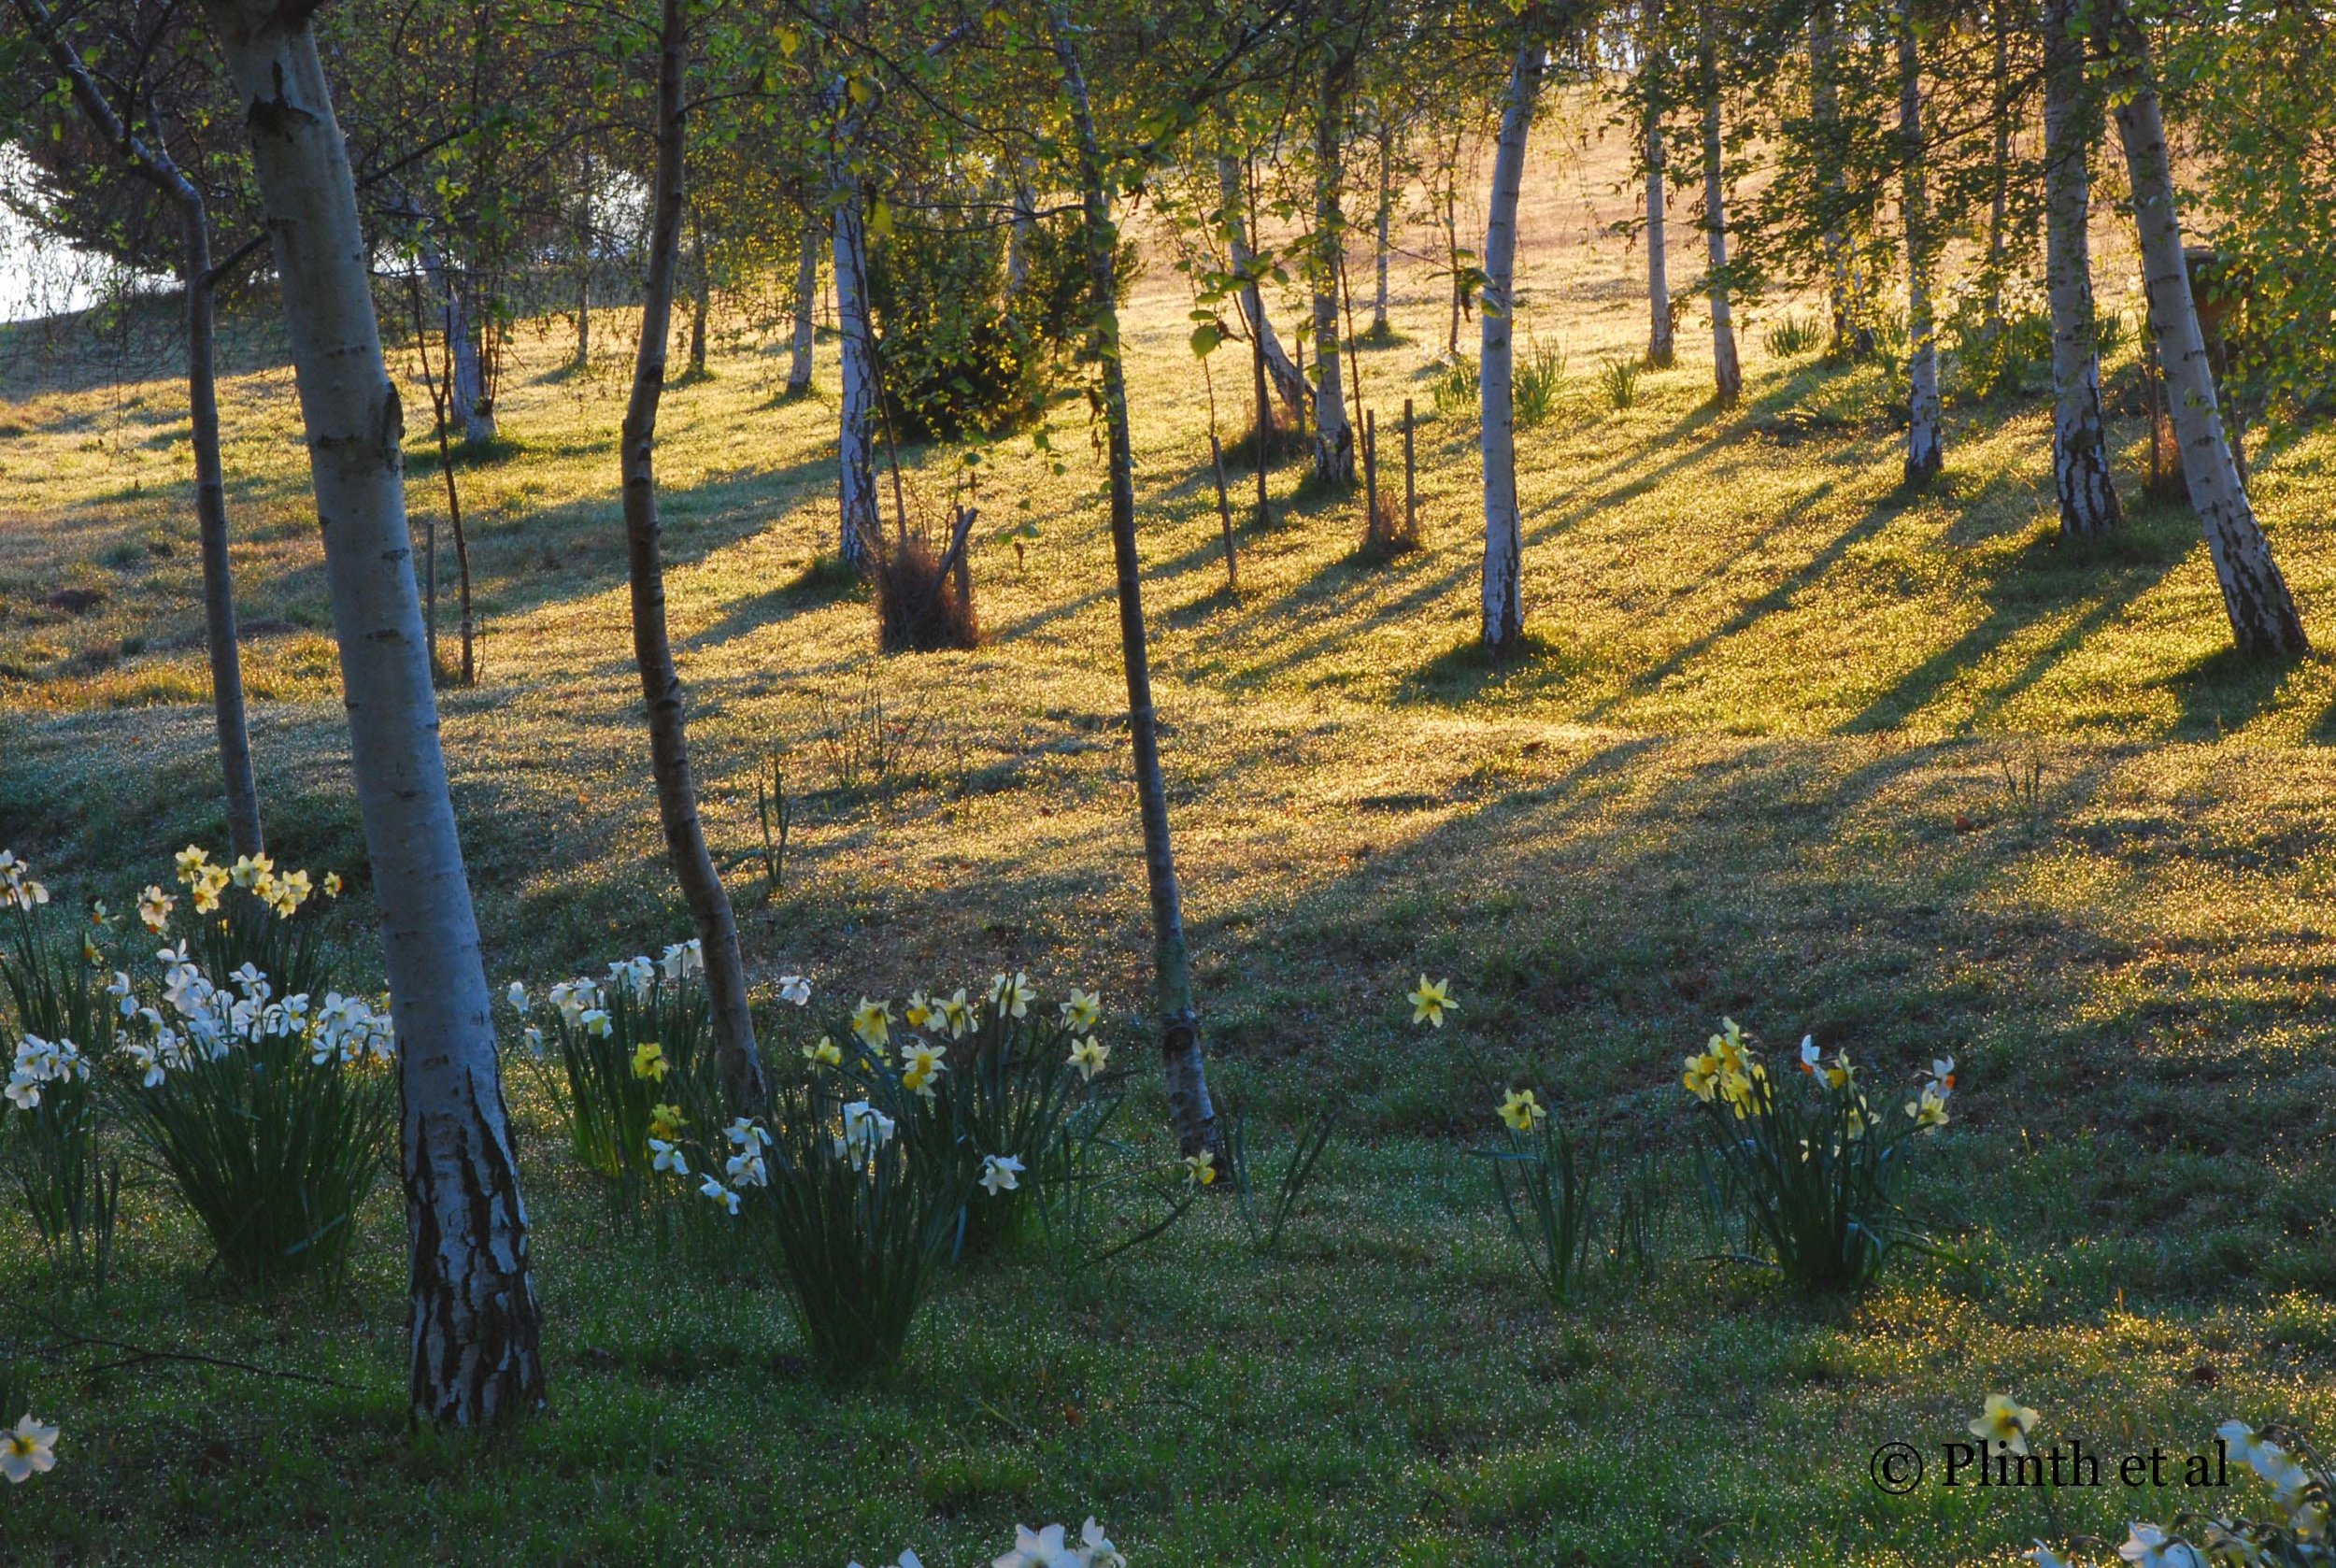 Birches cast long shadows across the lawn studded with daffodils.